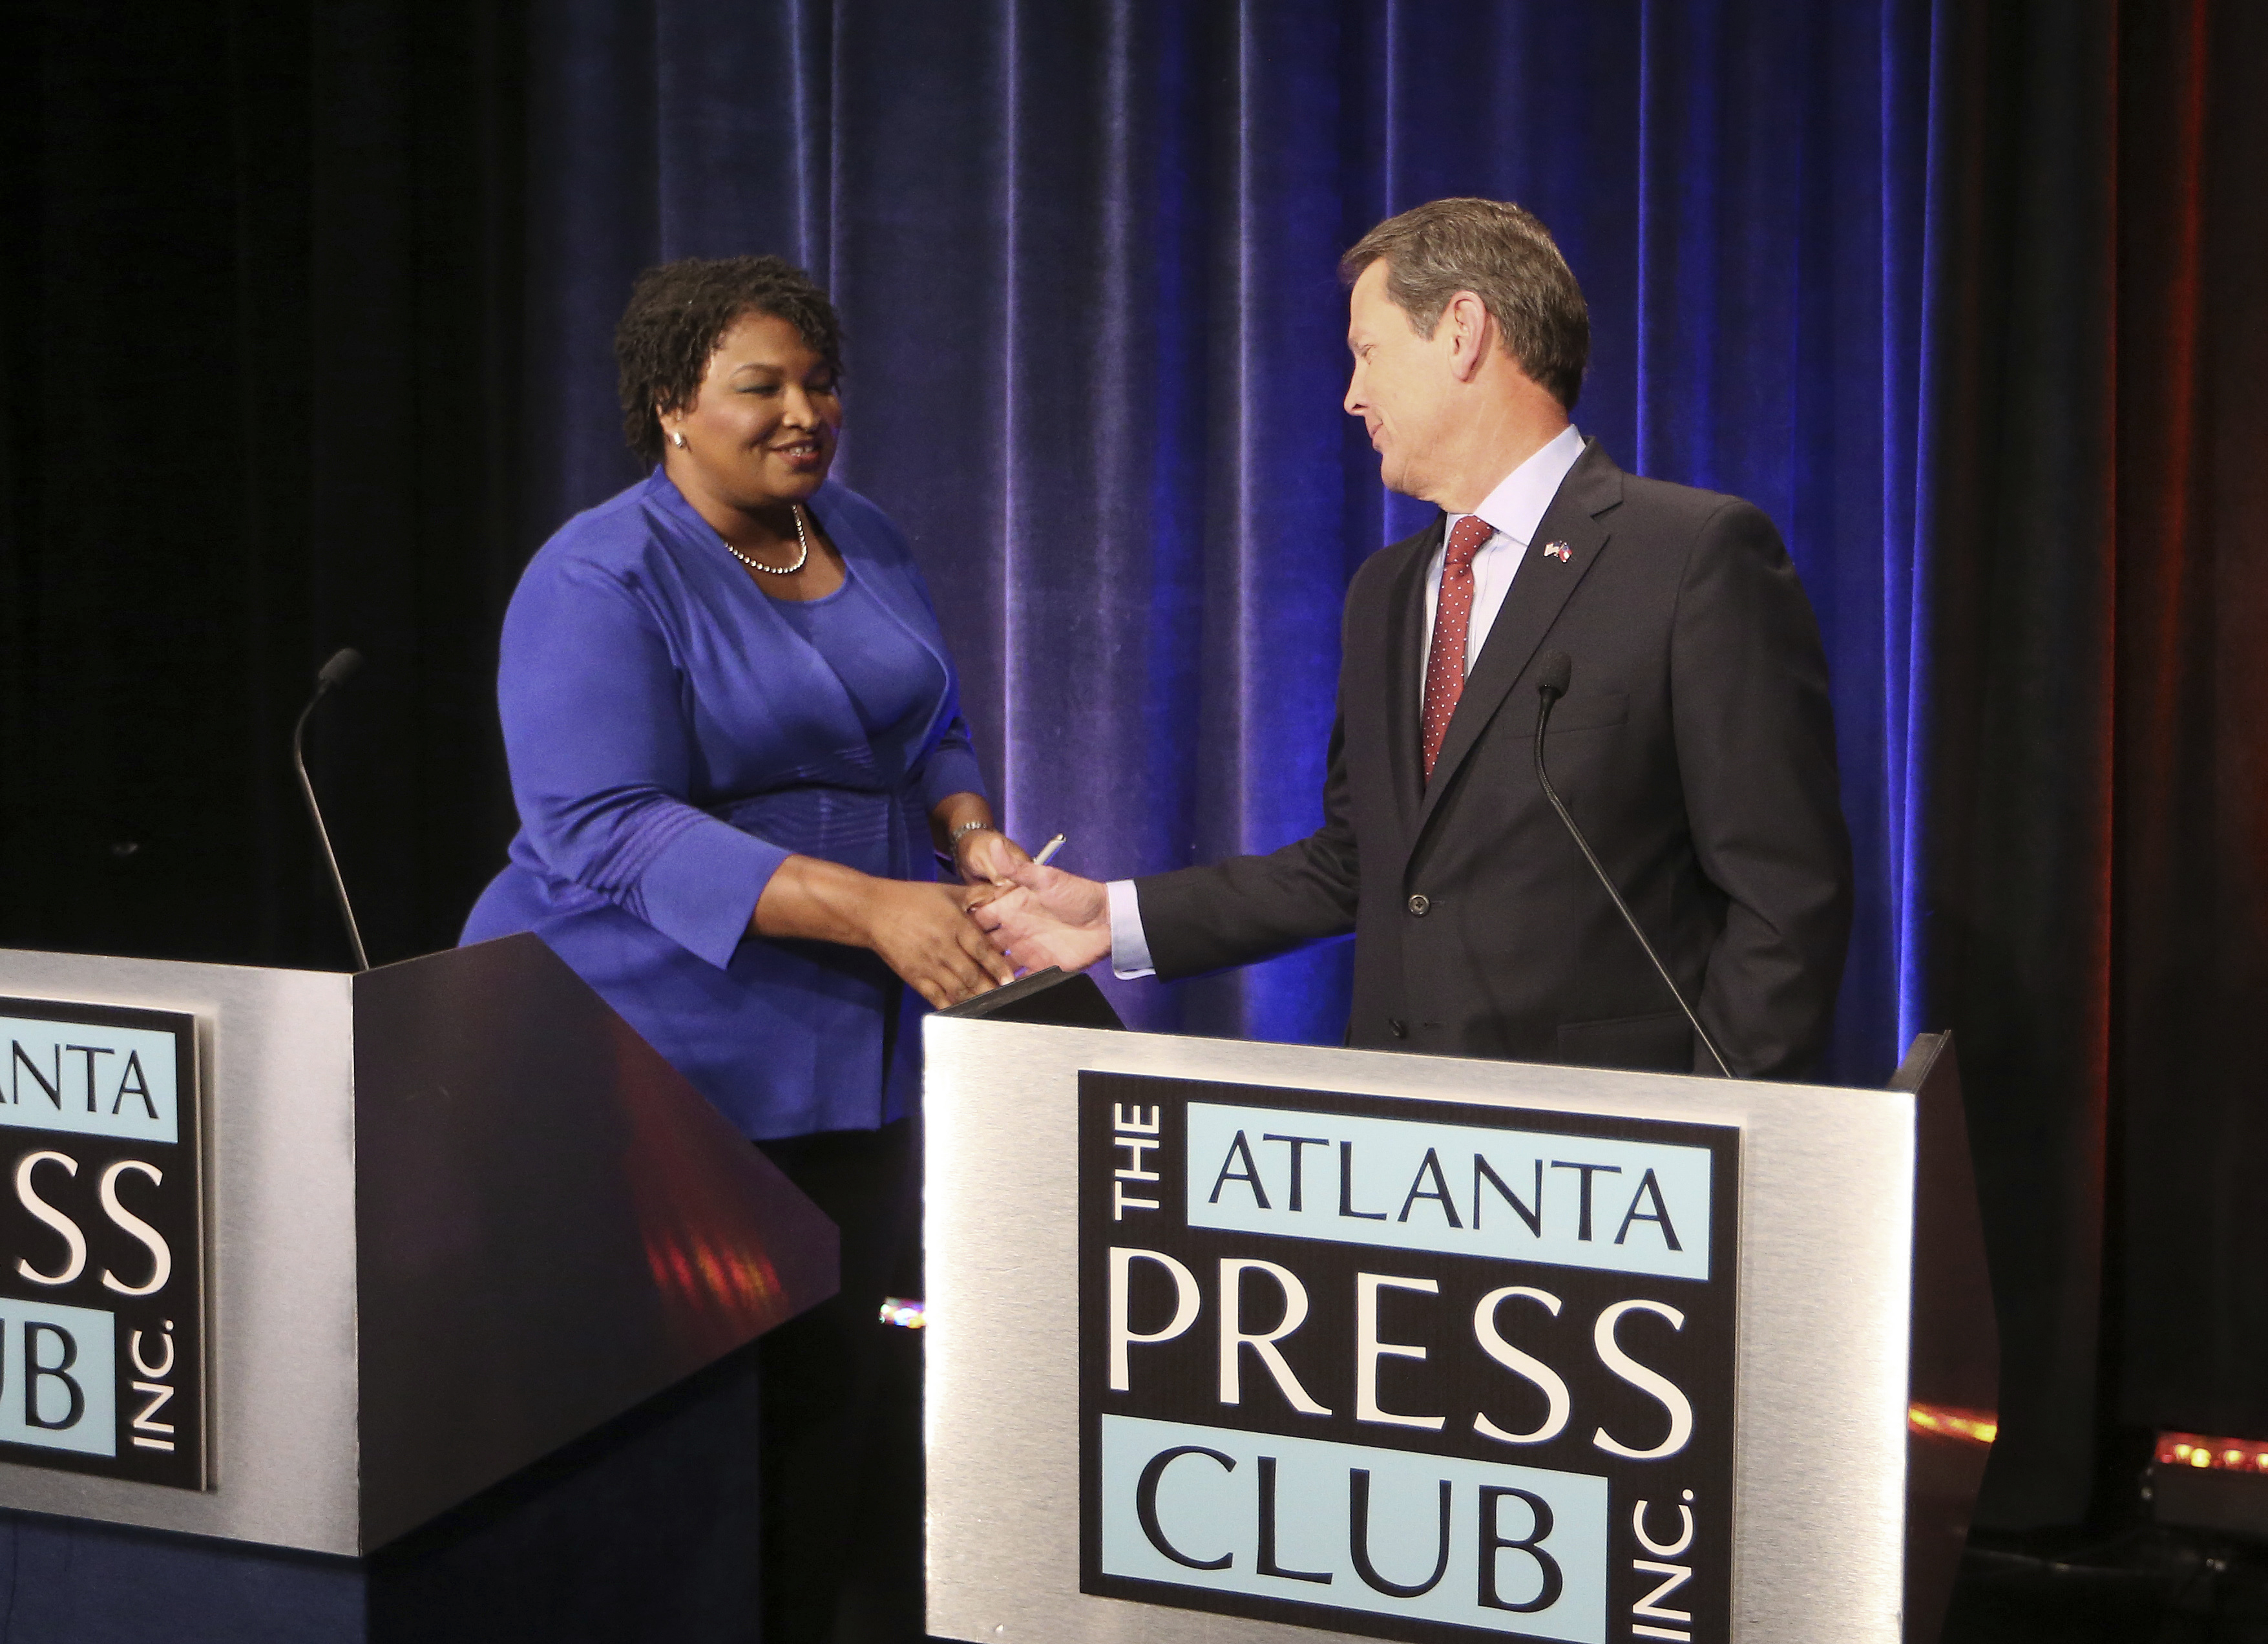 Georgia gubernatorial candidates (L-R) Democrat Stacey Abrams and Republican Brian Kemp shake hands before a debate at Georgia Public Broadcasting in Midtown Oct. 23, 2018 in Atlanta, Georgia. (Photo by John Bazemore-Pool/Getty Images)